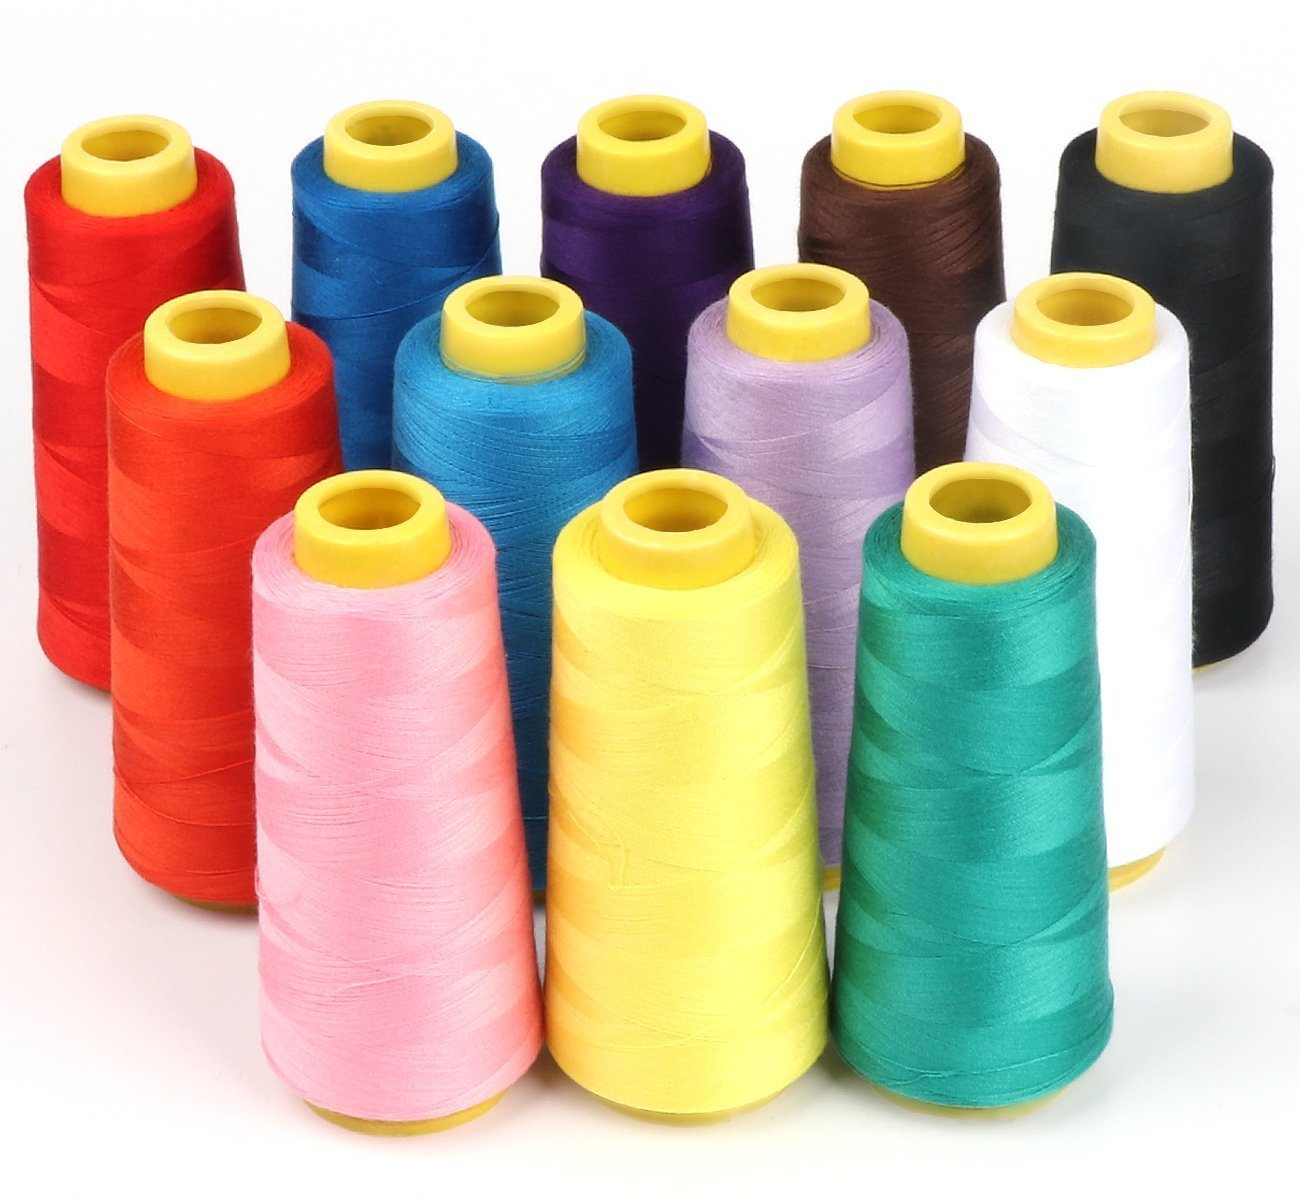 ilauke 12 X 1500M Overlock Sewing Thread Assorted Colors Yard Spools Cone 100% Polyester for Serger Quilting Drapery by ilauke